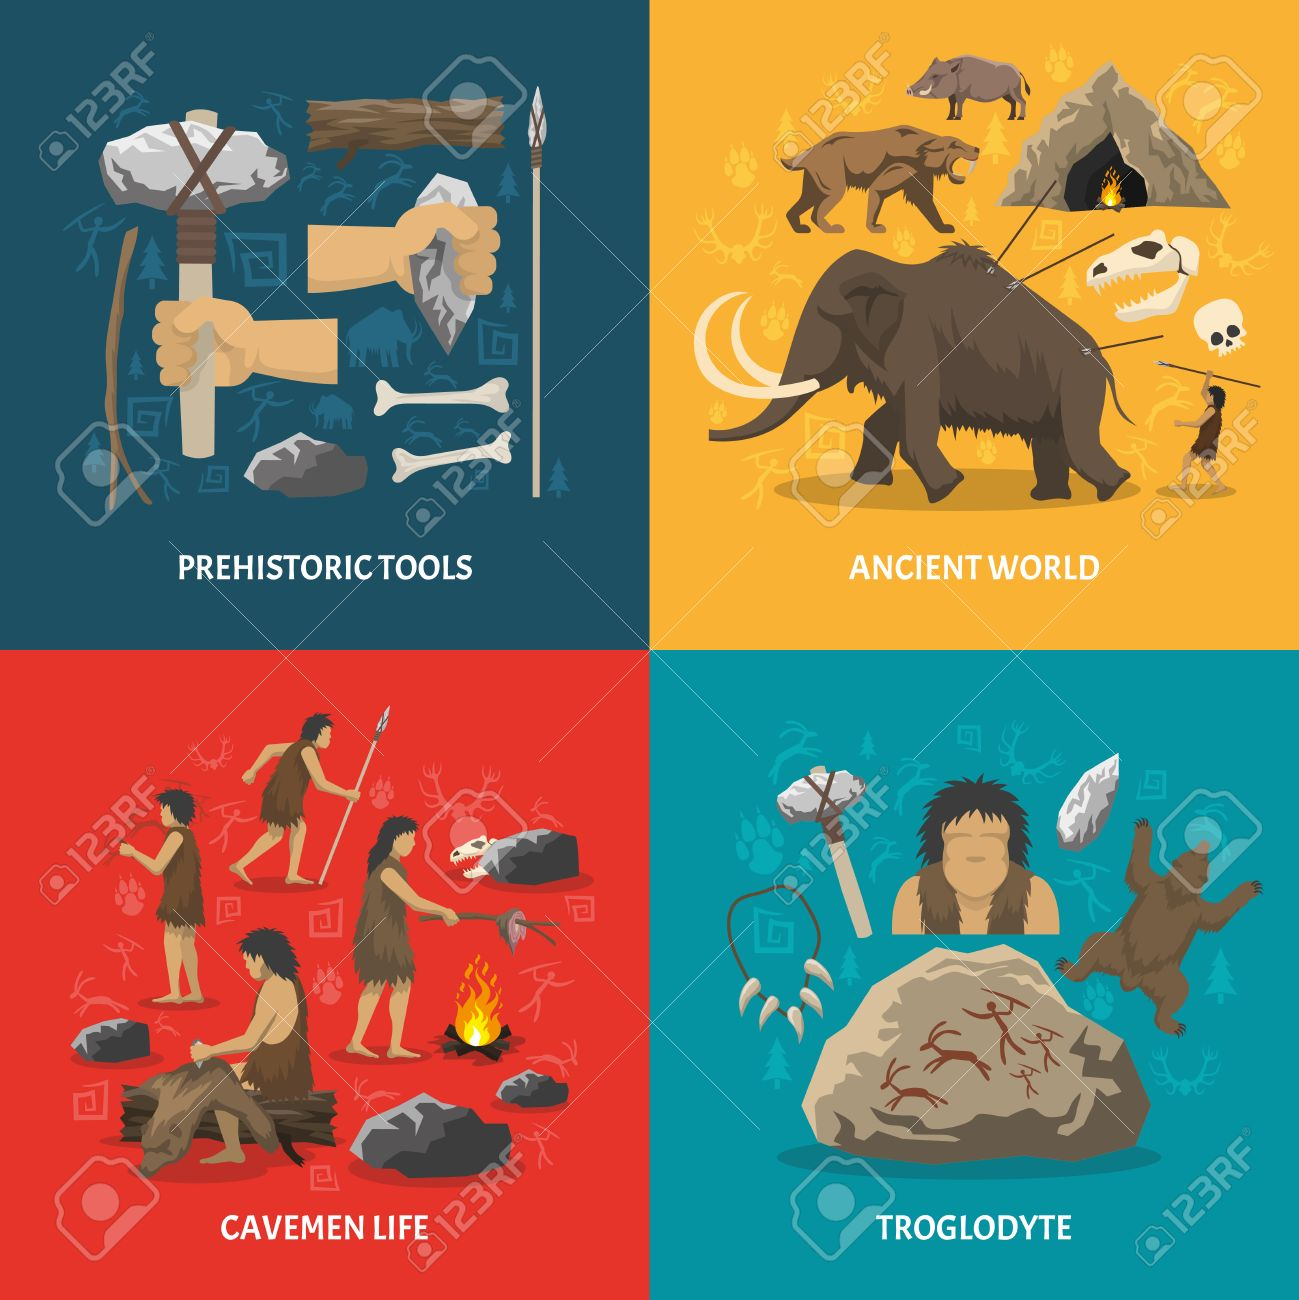 Color flat composition with title depicting prehistoric tools caveman life ancient world troglodyte isolated vector illustration - 56152622